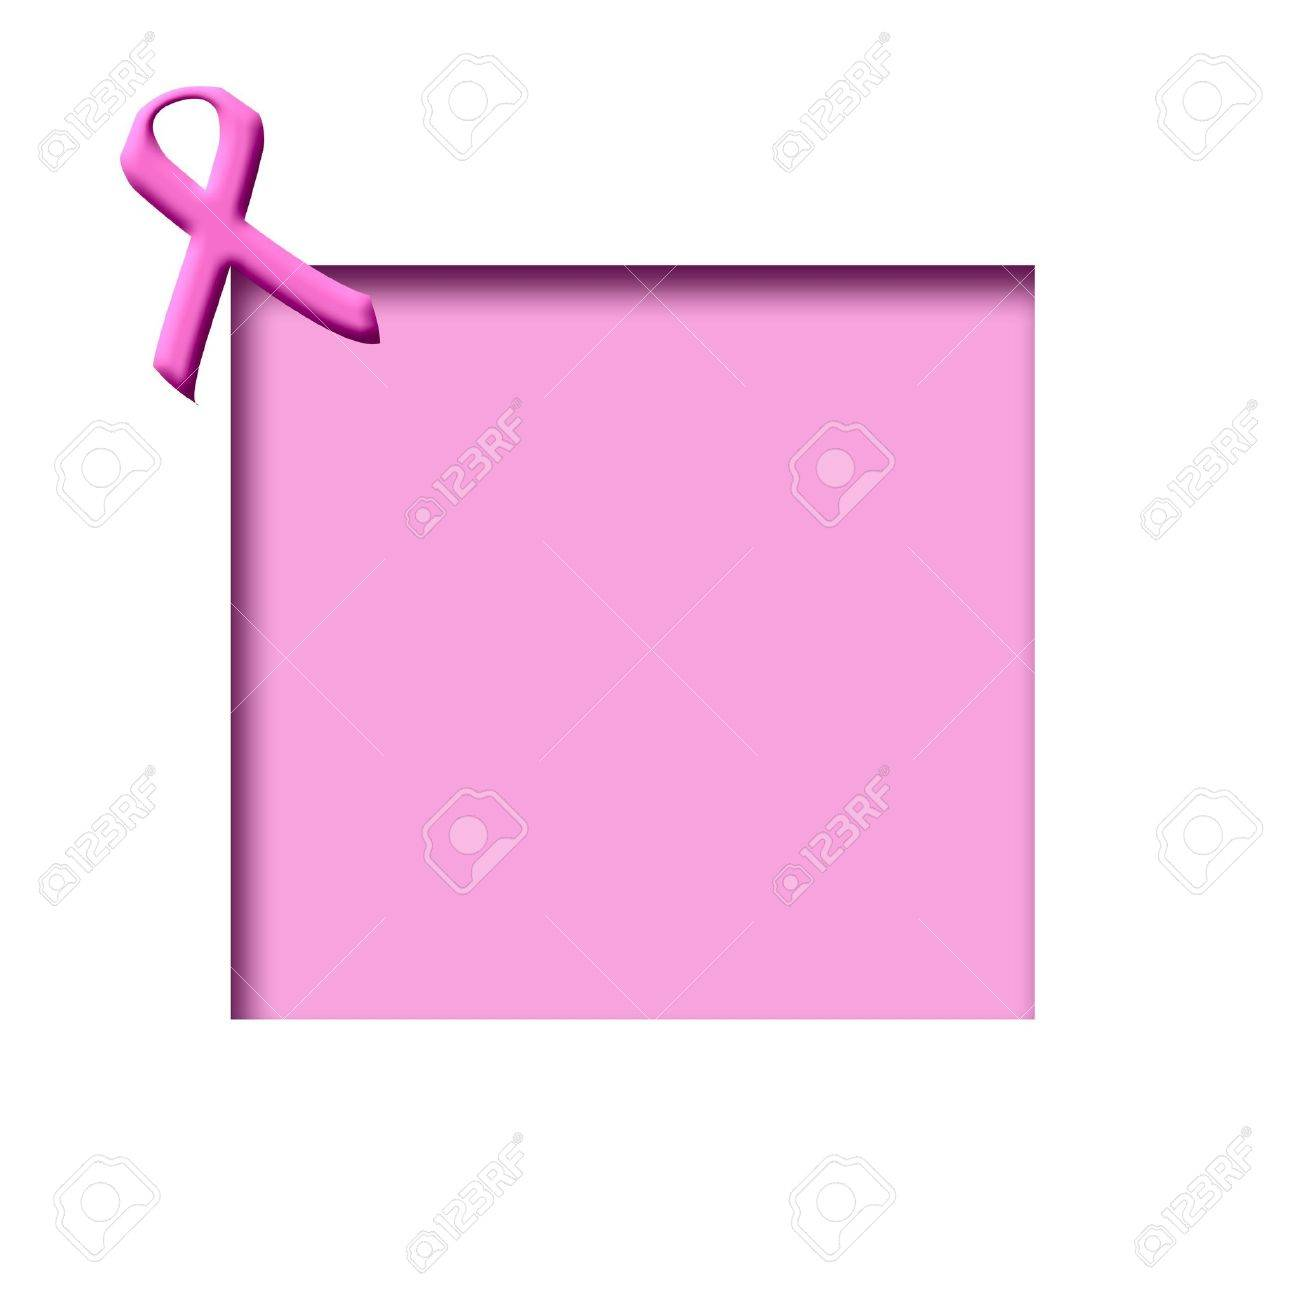 Breast Cancer Awareness Pink Ribbon On Cutout Frame Stock Photo